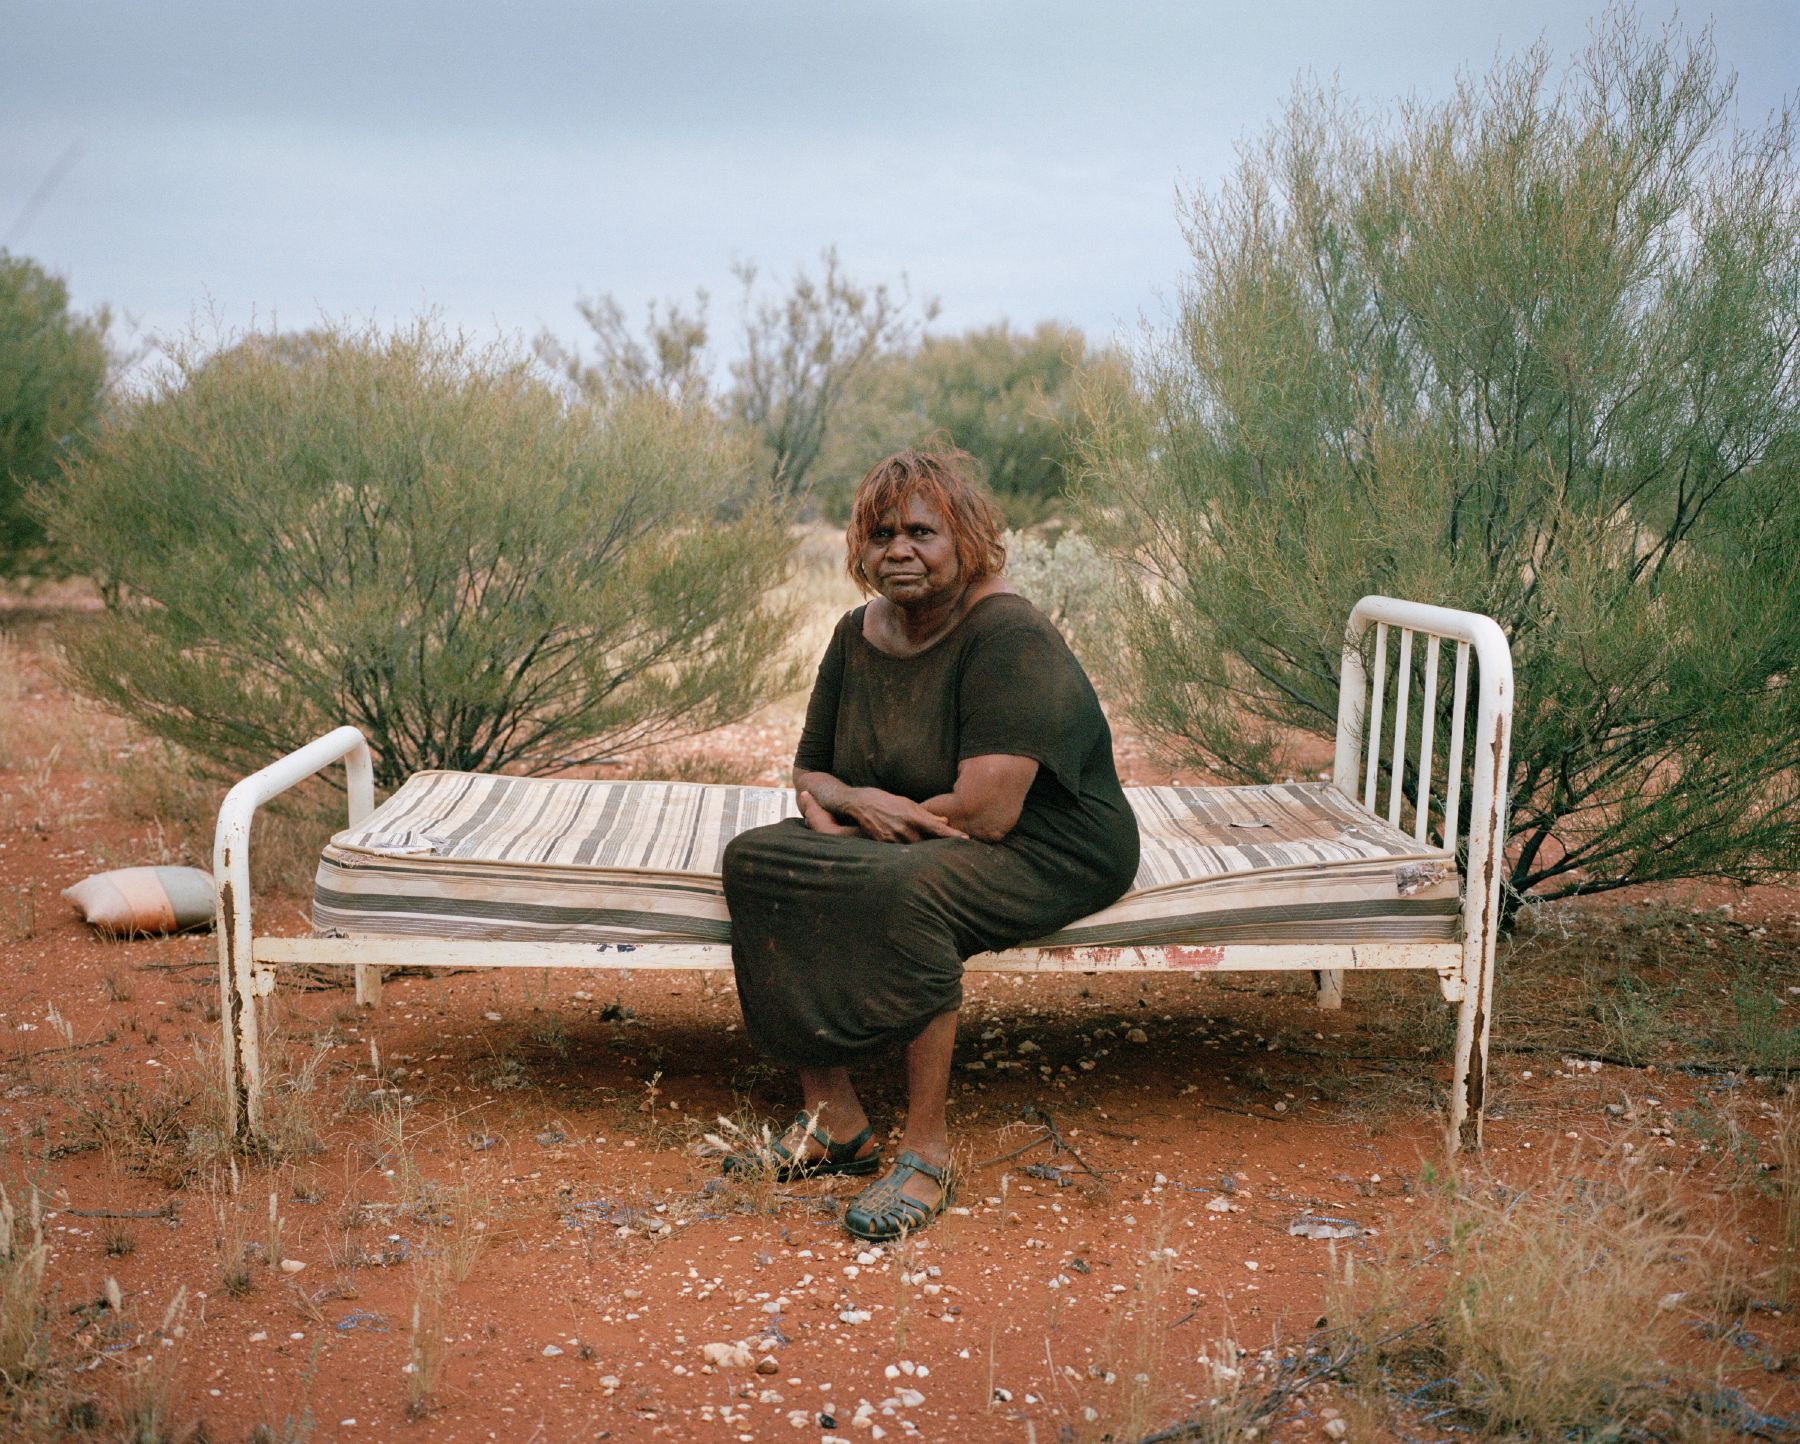 Big Sky: Portraits from the Outback - Photographs and text